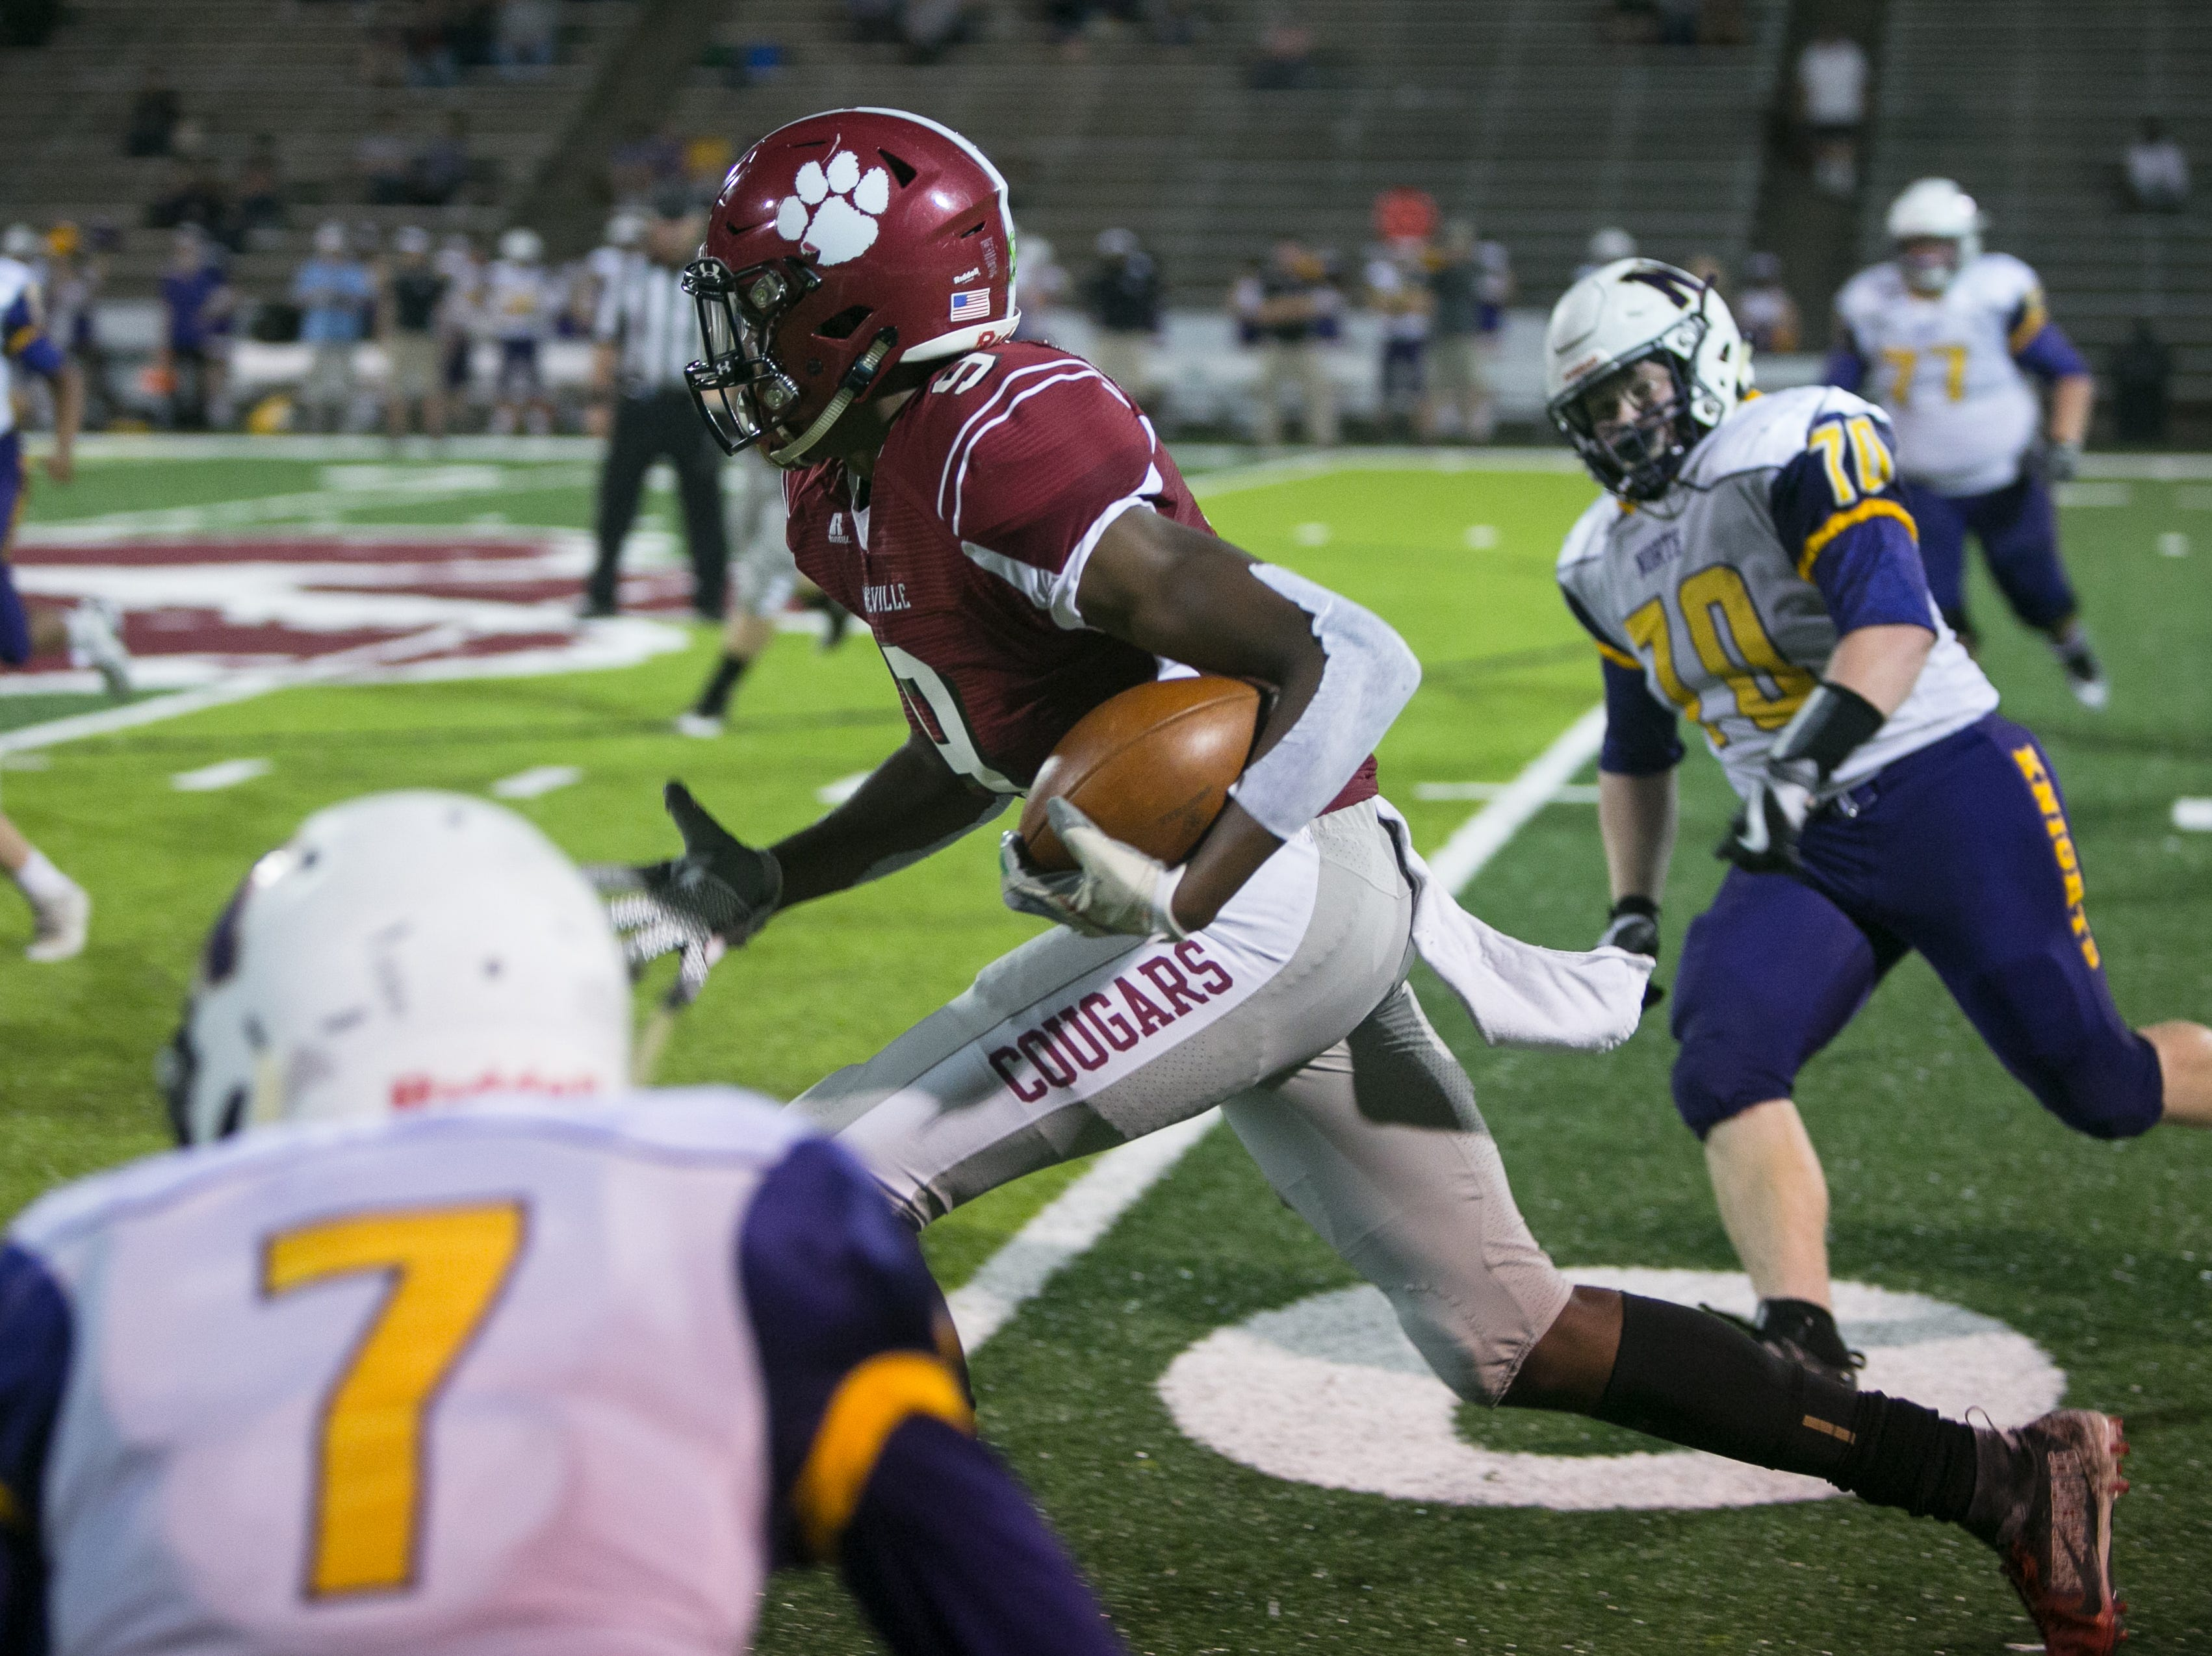 Asheville's Famous Pasley runs the ball on Friday, September 28th, 2018 as Asheville High beat out North Henderson at Asheville, with a final score of 50-14.  Pasley became the school's all-time touchdown reception leader during Friday's game.